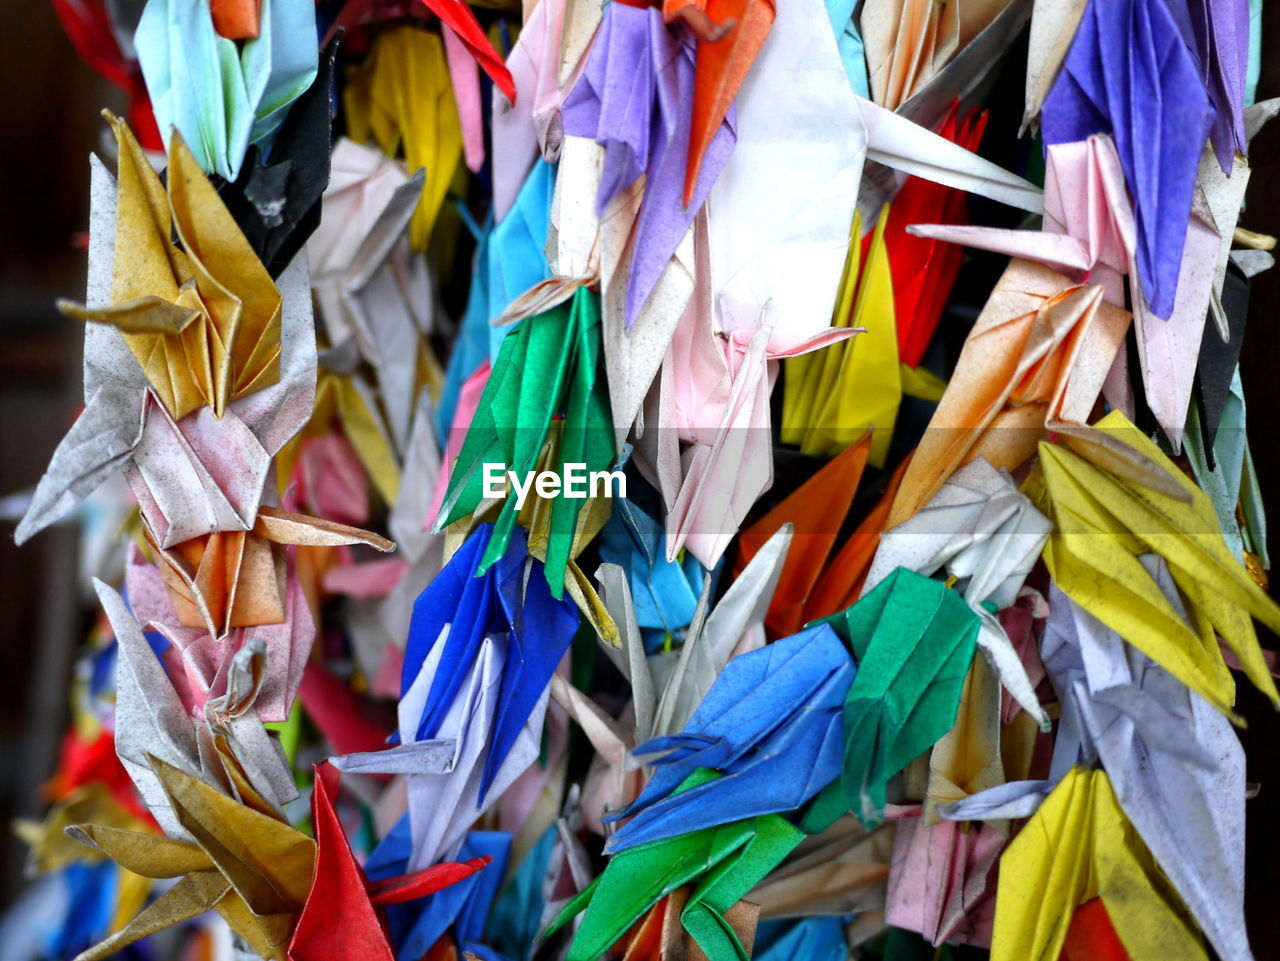 Colorful paper cranes hanging outdoors